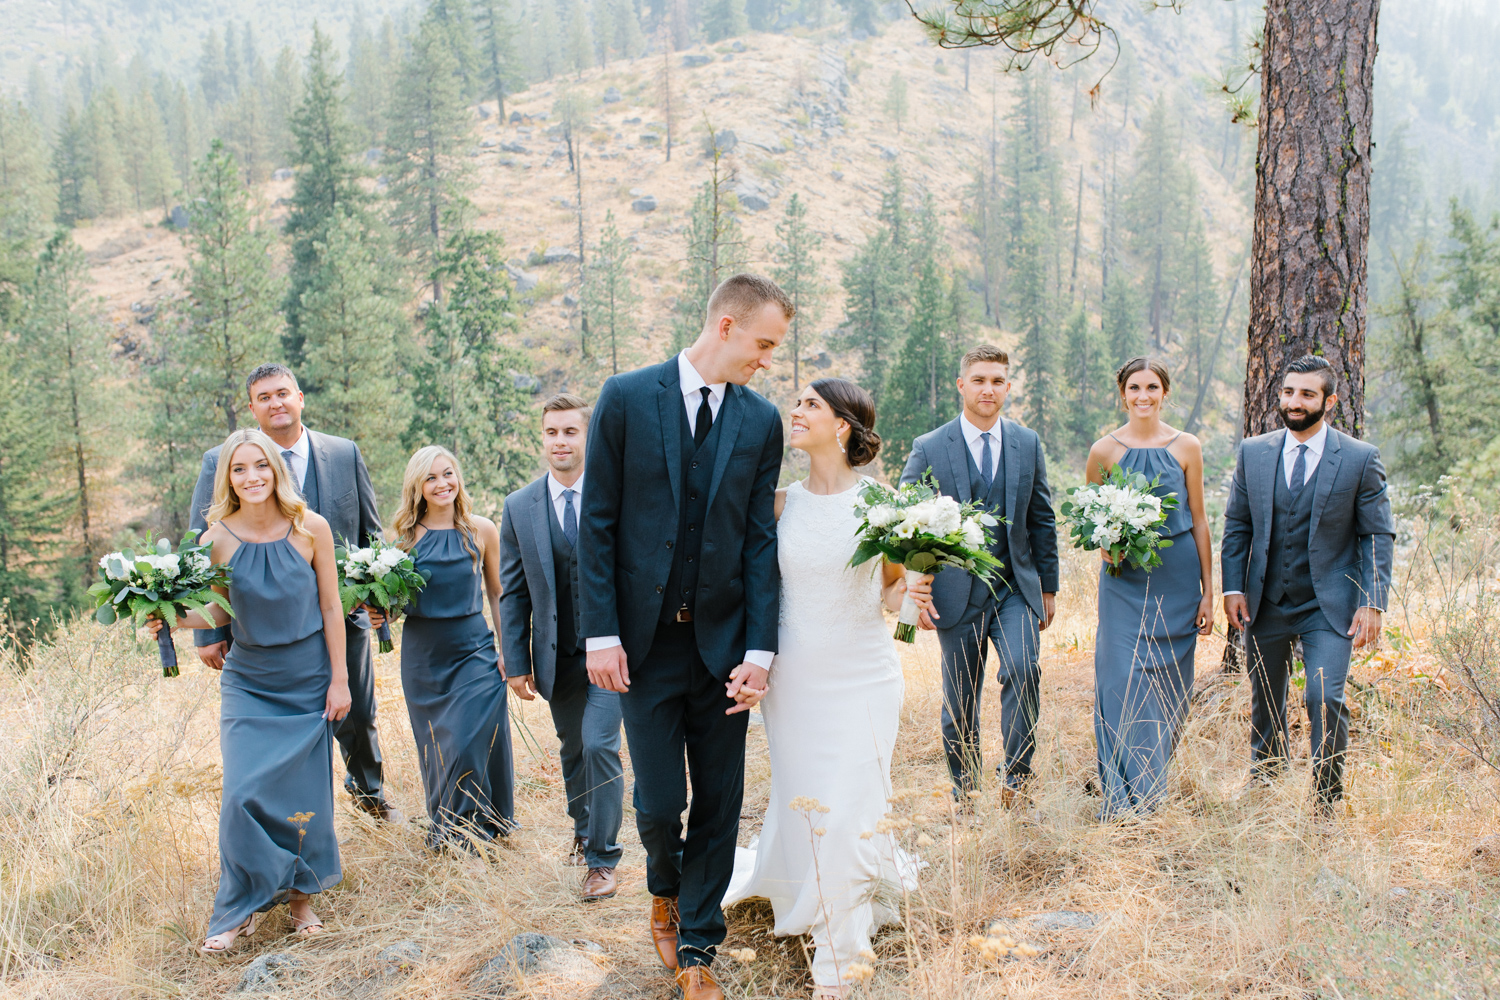 Grey and White Wedding in the Mountains of Leavenworth, Washington | Sleeping Lady | Classic and Timeless Wedding | VSCO | Bridal Party Portraits on a Mountain.jpg-2690.jpg